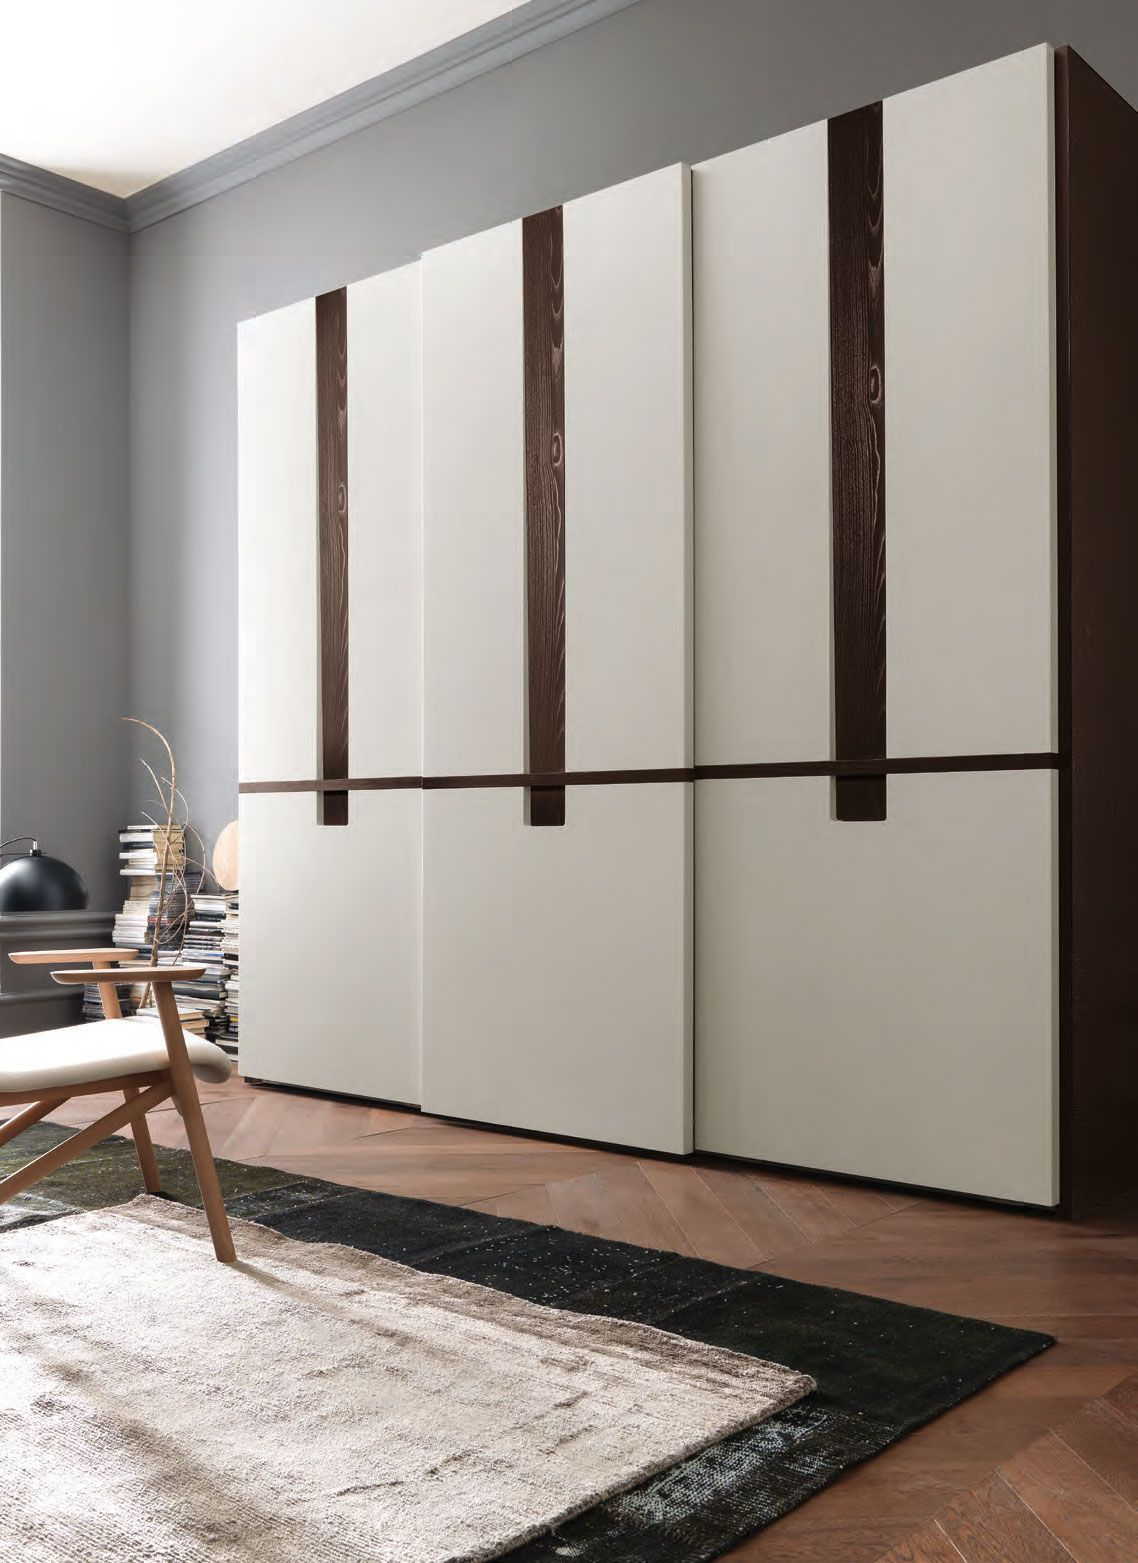 35 modern wardrobe furniture designs wardrobe furniture for Room kabat design